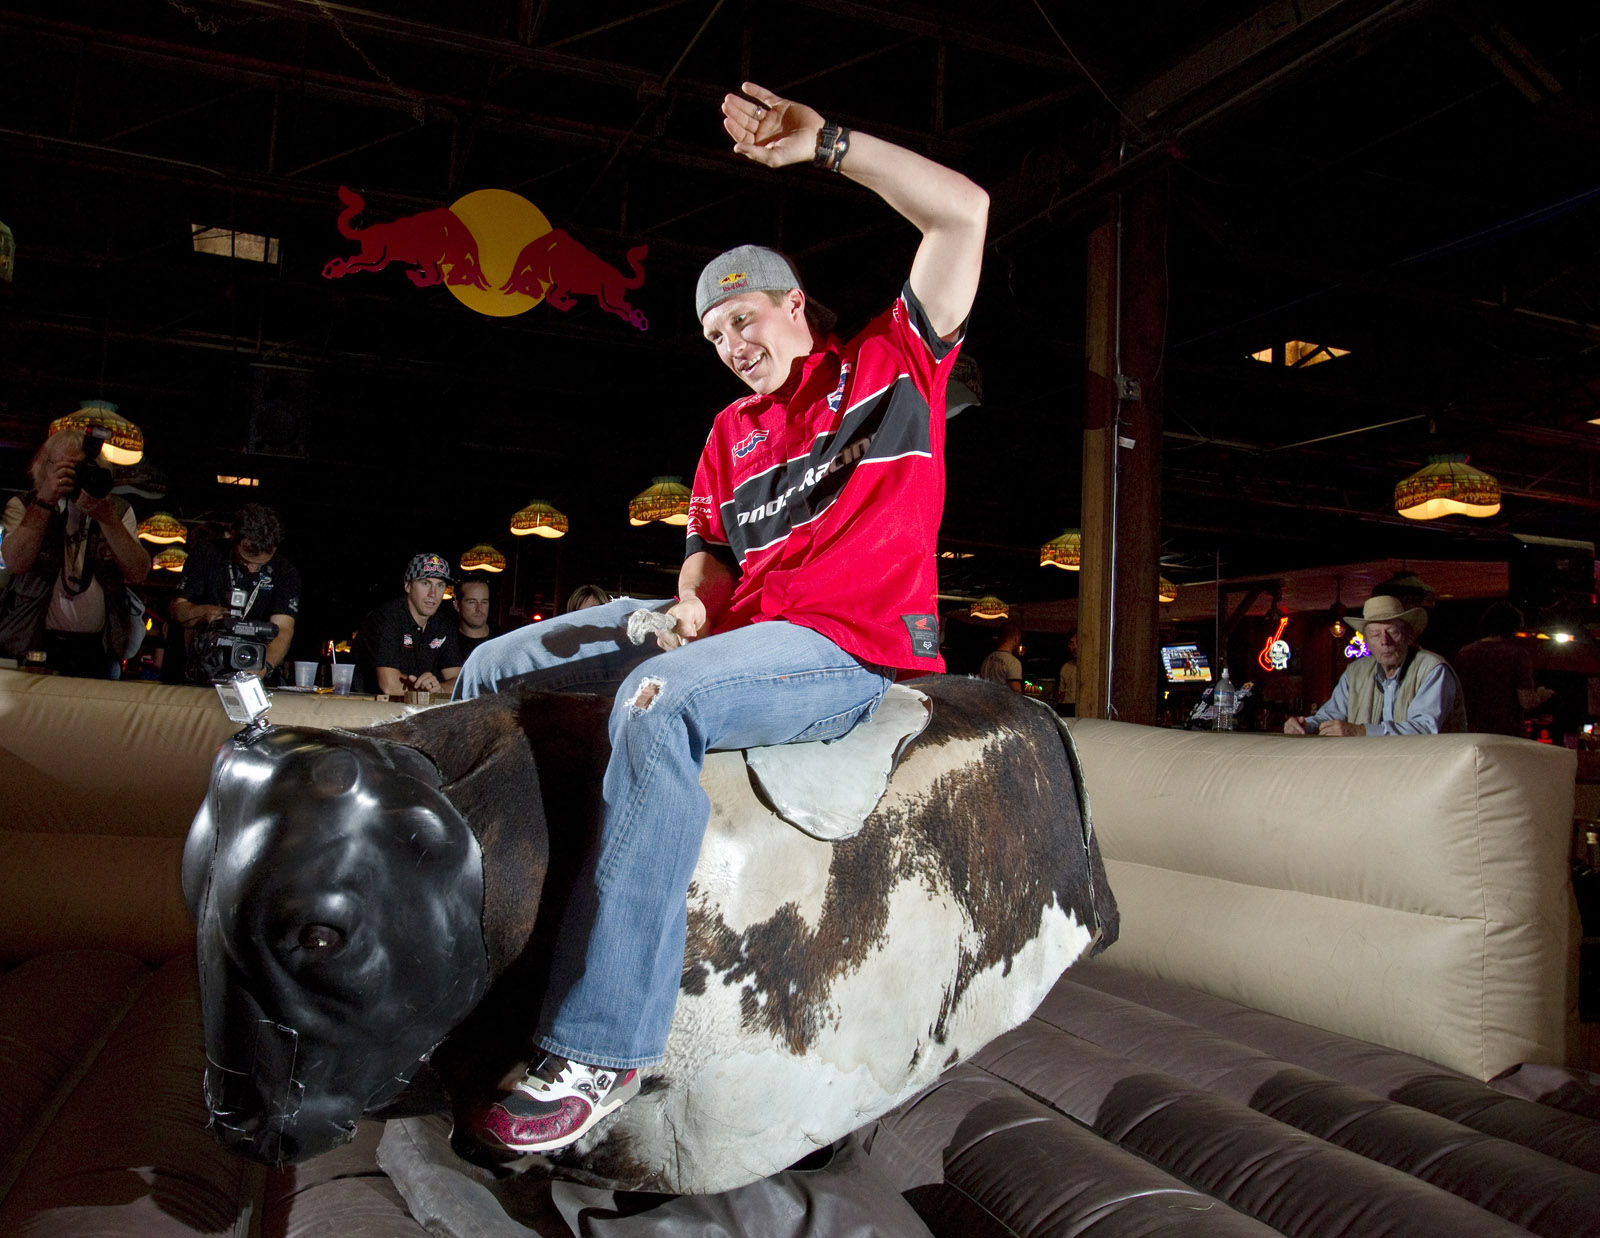 Mechanical Bull Ride in Delhi